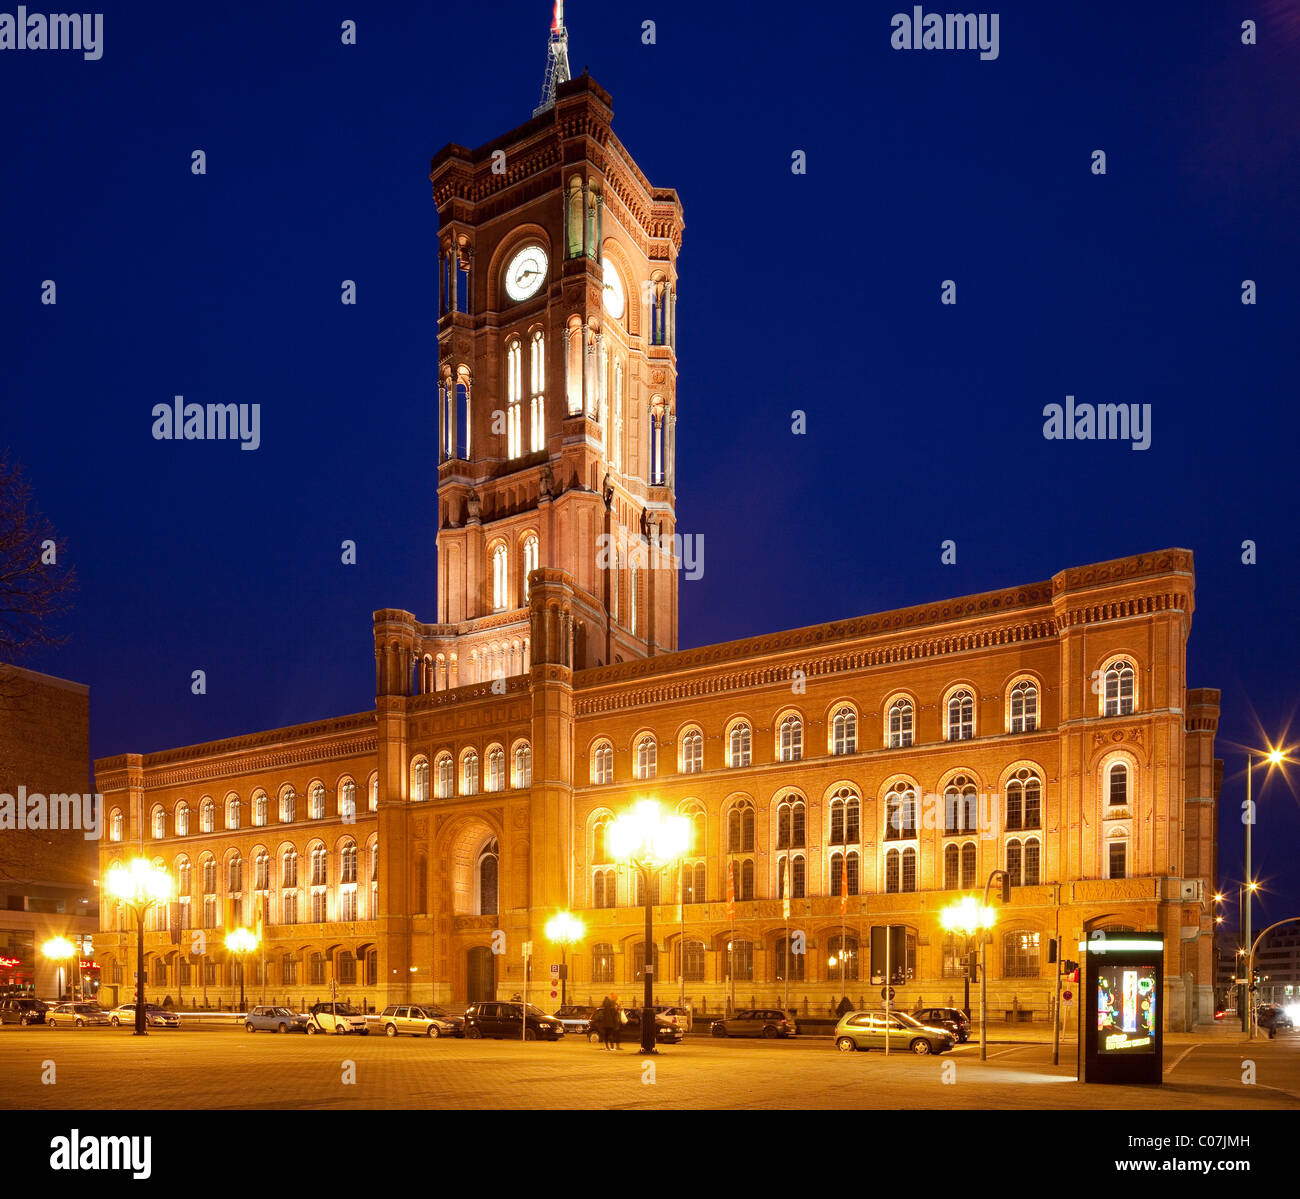 Rotes Rathaus, red town hall, Berlin-Mitte, Berlin, Germany, Europe - Stock Image